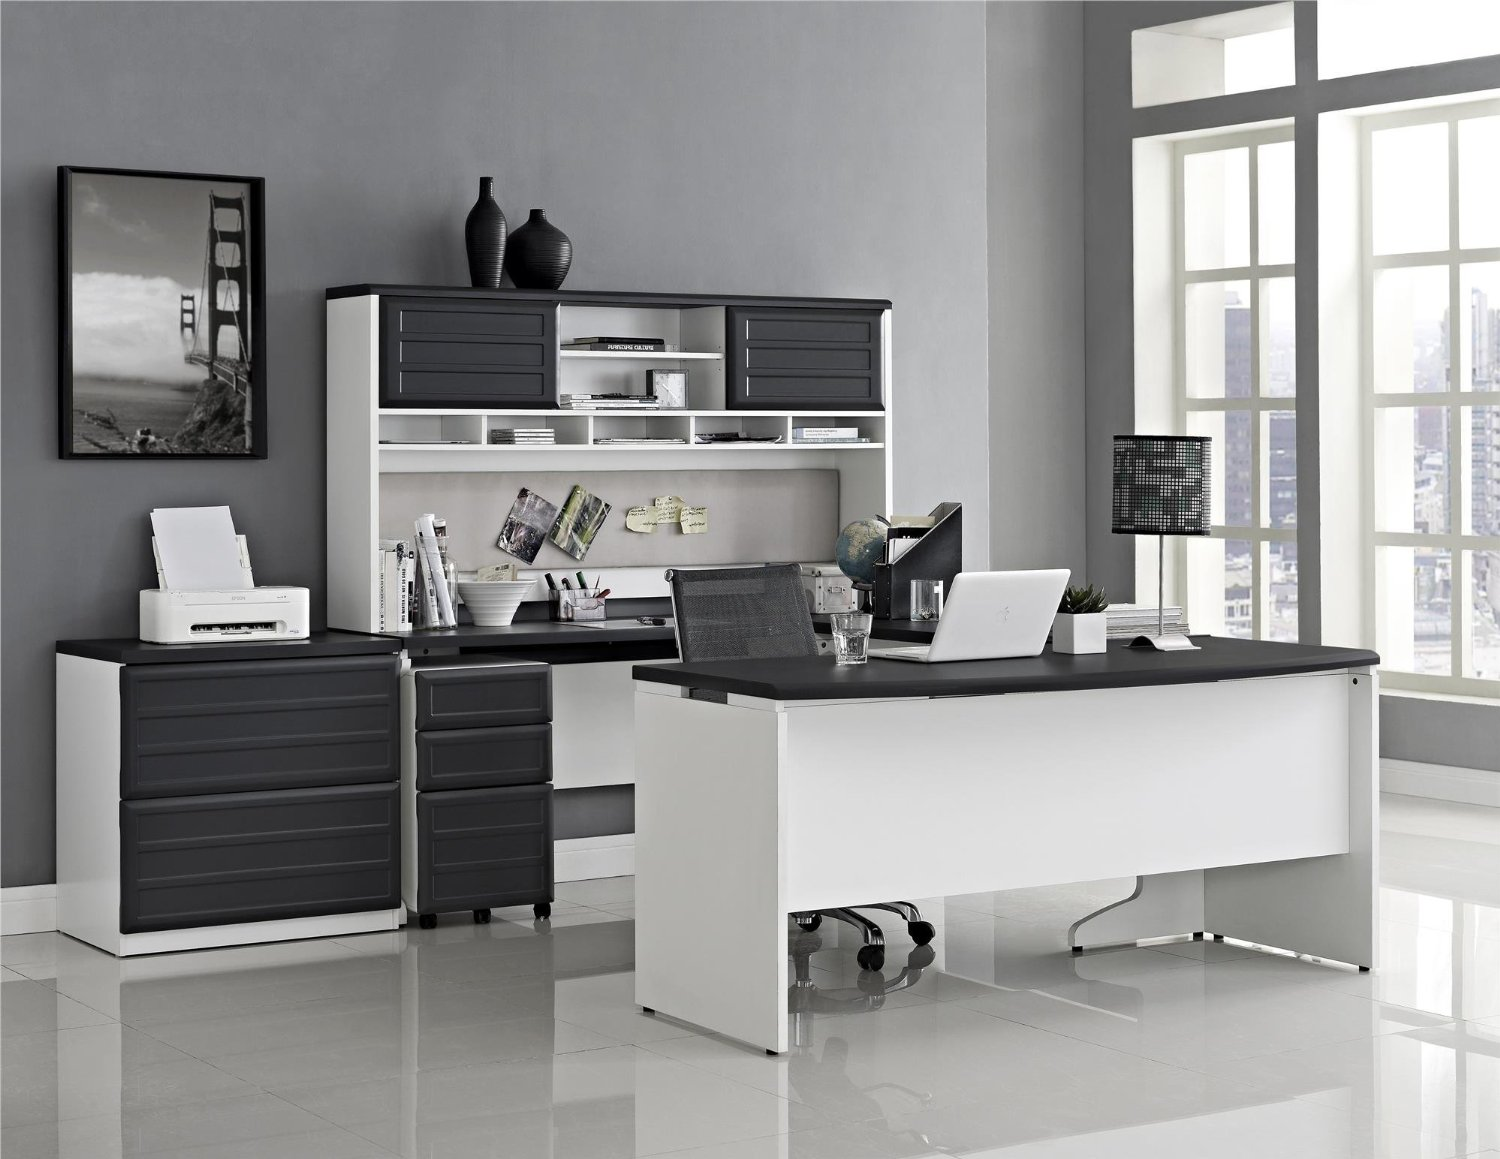 aluminum desk full glamorous size wood and for office colormanufactured frantic brushed lacquer in pool of dw black wells construction faux large as white executive fabulous